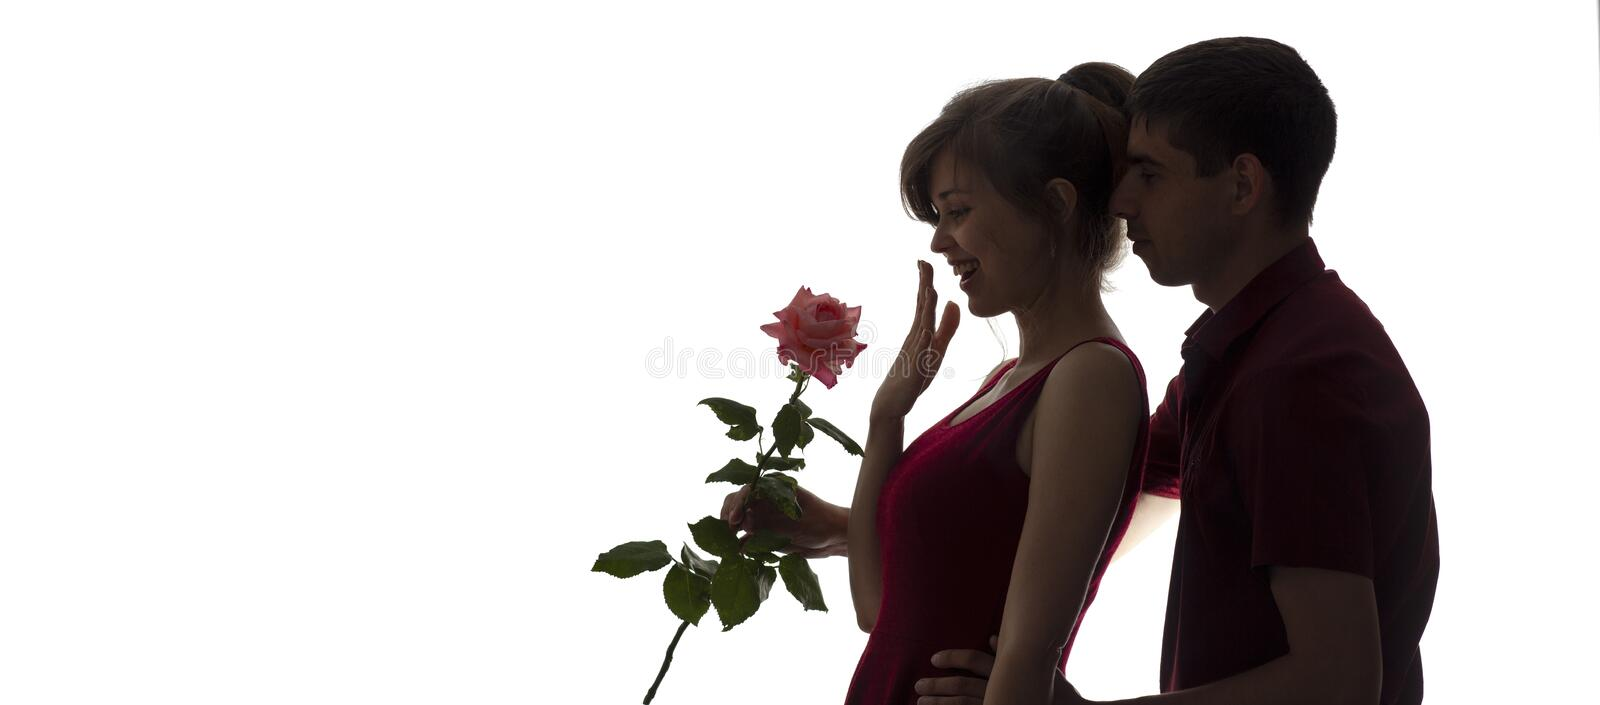 Silhouette of a young man and woman in love on white isolated background, boy came up behind to girl to make a surprise with rose stock image